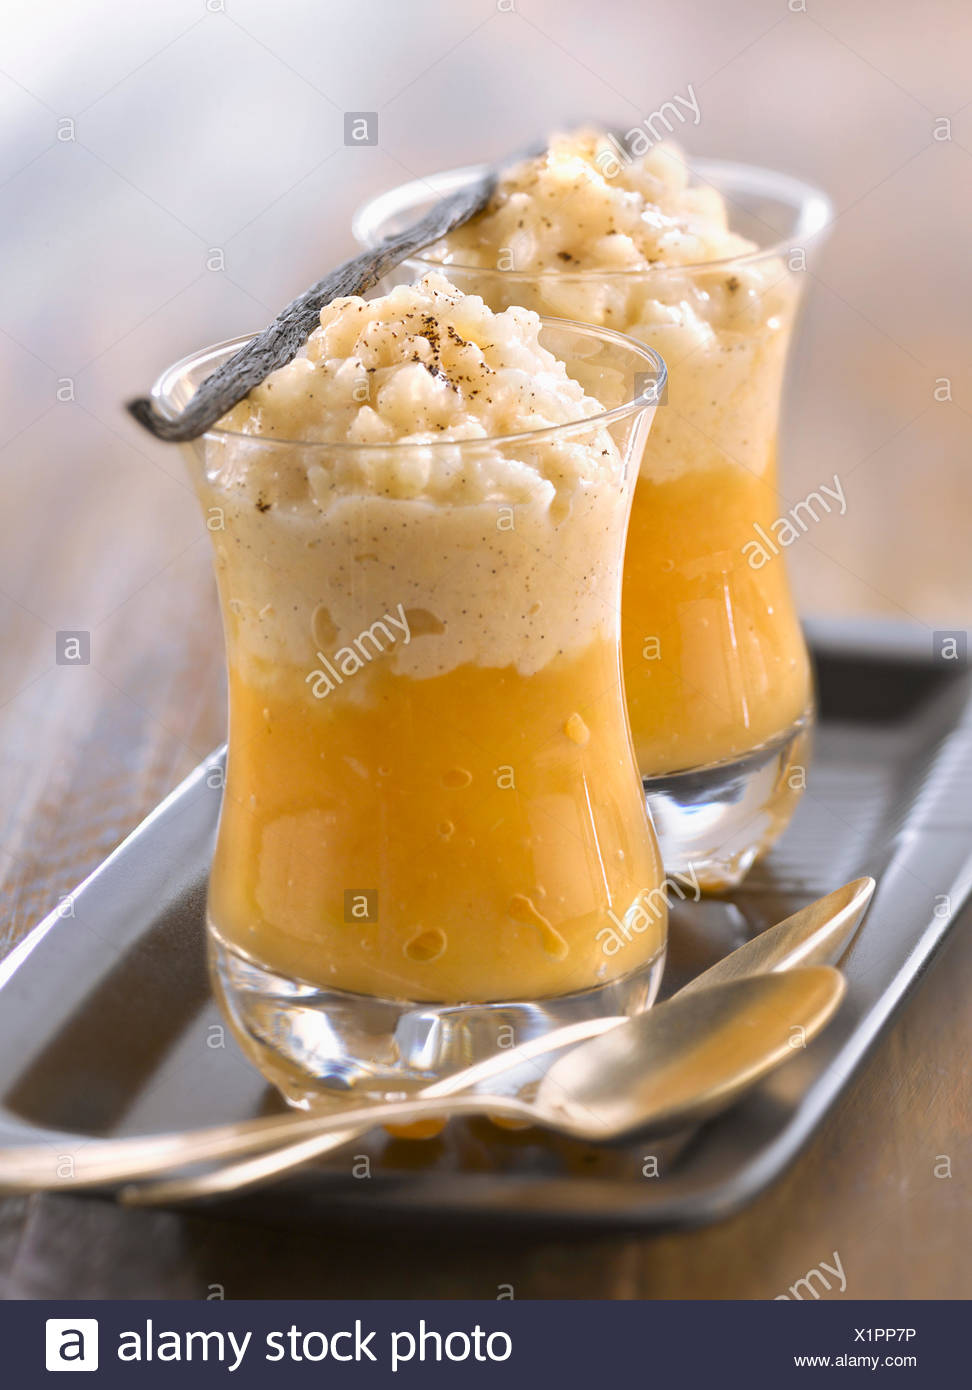 Quince stock photos quince stock images alamy vanilla flavored rice pudding with stewed quince stock image biocorpaavc Image collections